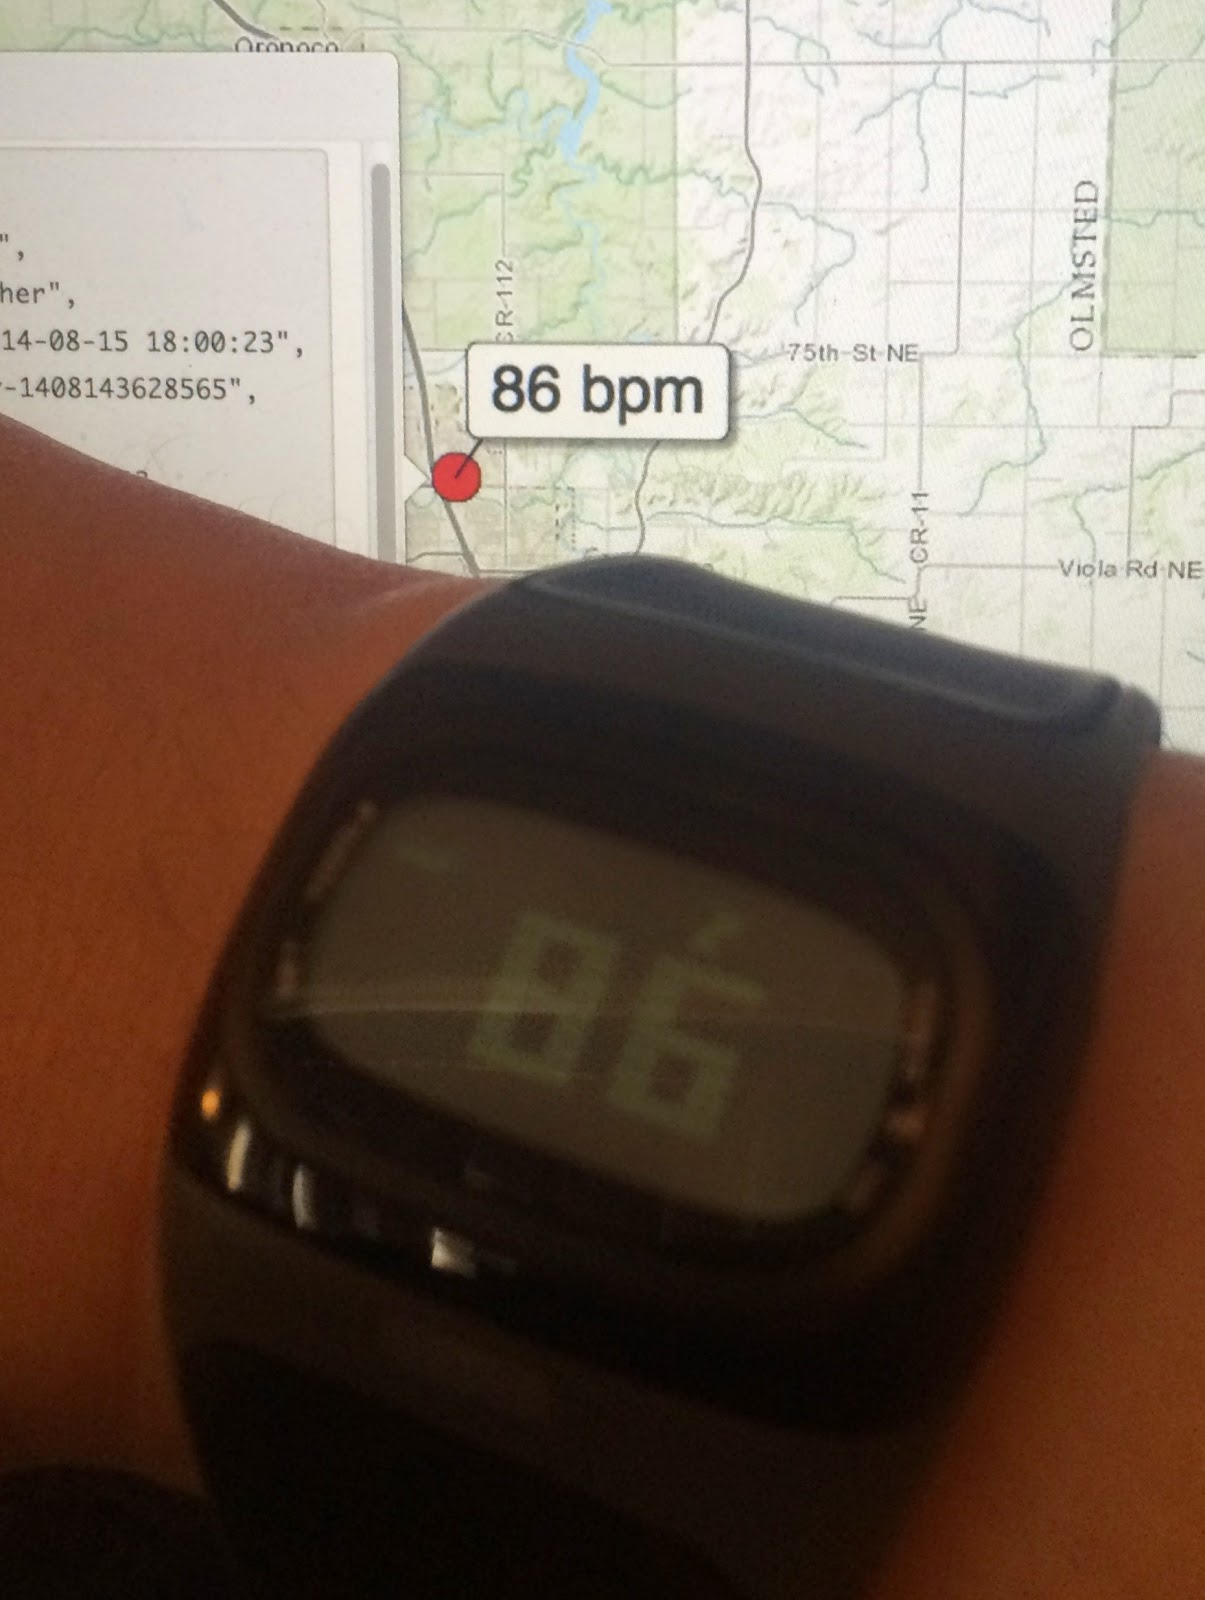 HR Tracker Web App Showing Real-time Heart Rate